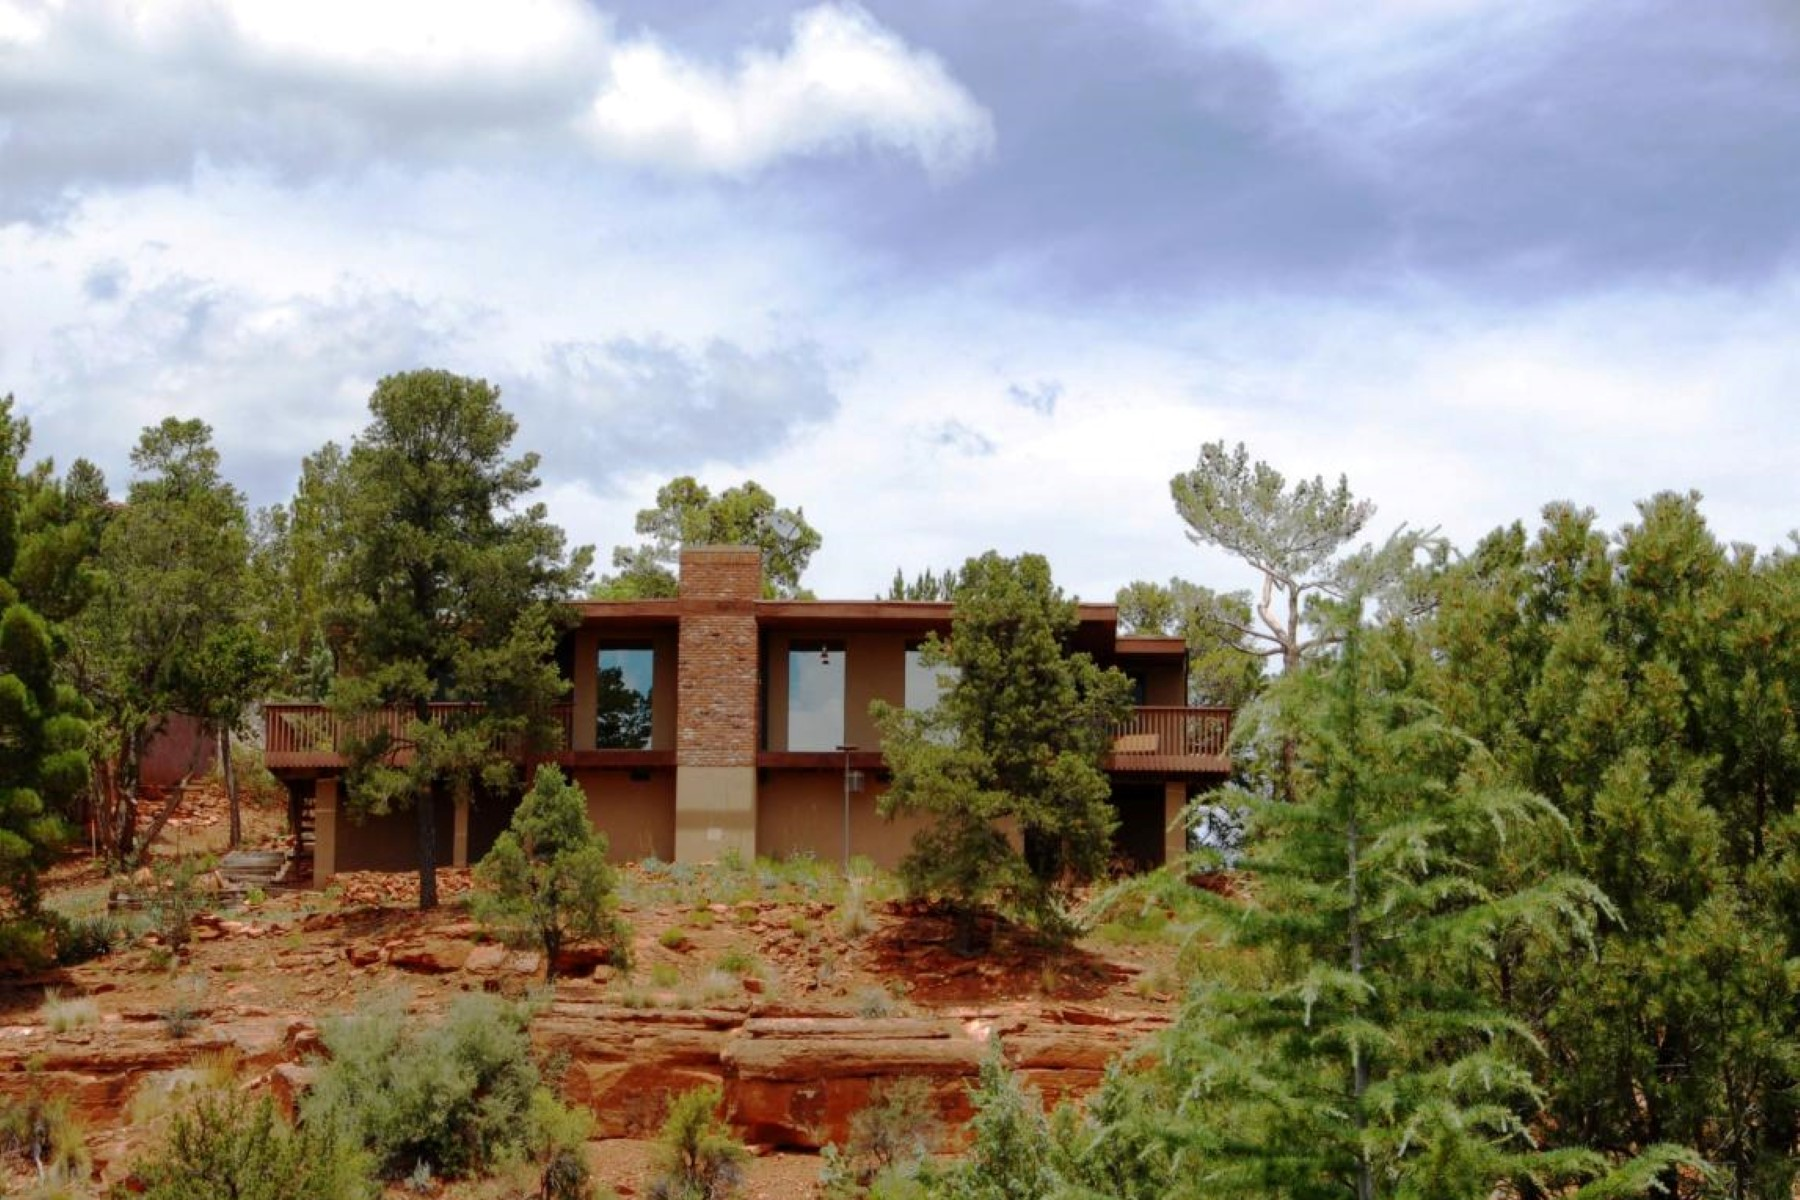 Single Family Home for Sale at Diamond in the Rough with panoramic views. 185 Ridge Rd Sedona, Arizona 86336 United States